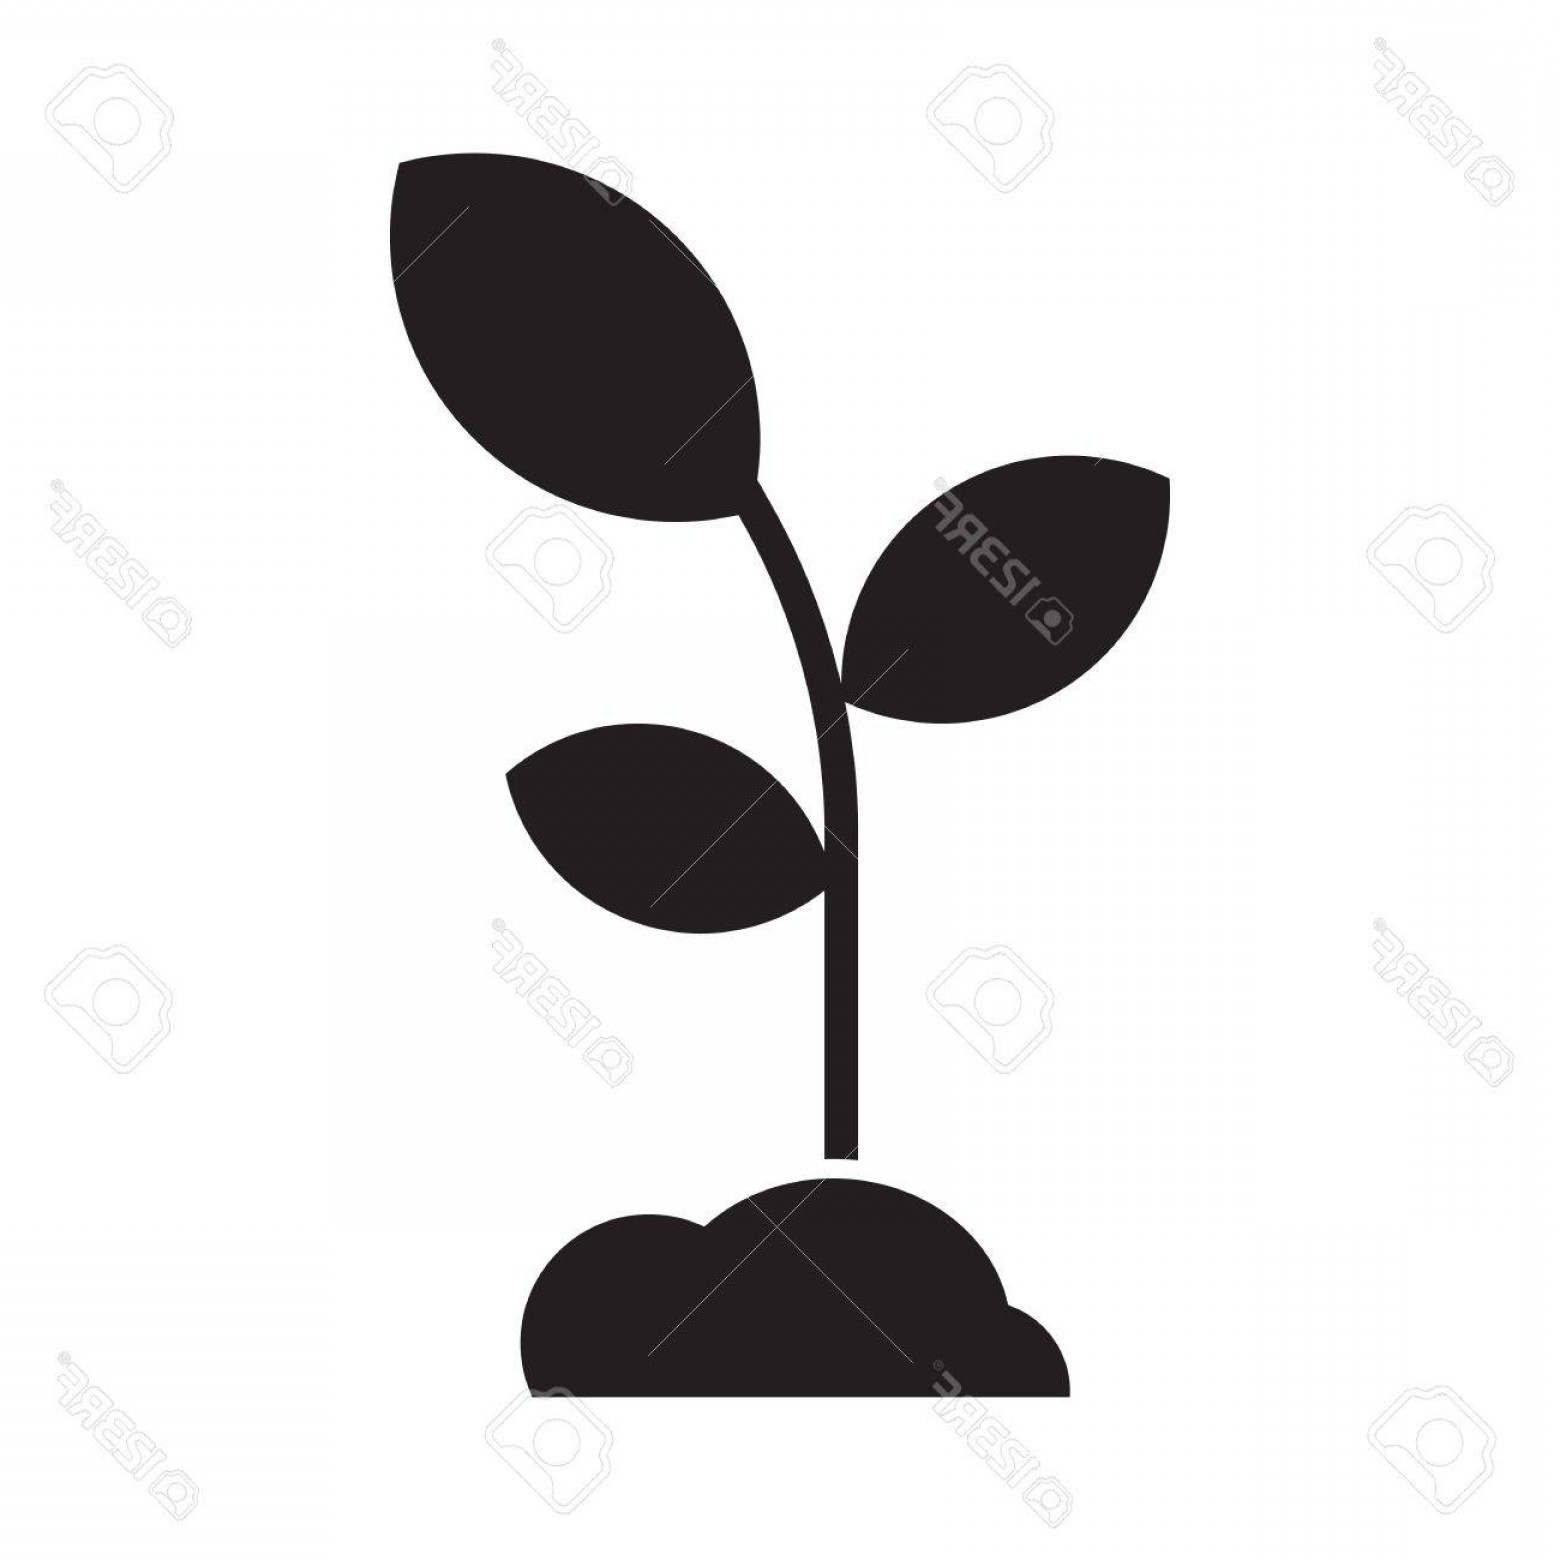 1560x1560 Photostock Vector Seedling With Leaves And Soil Abstract Growing